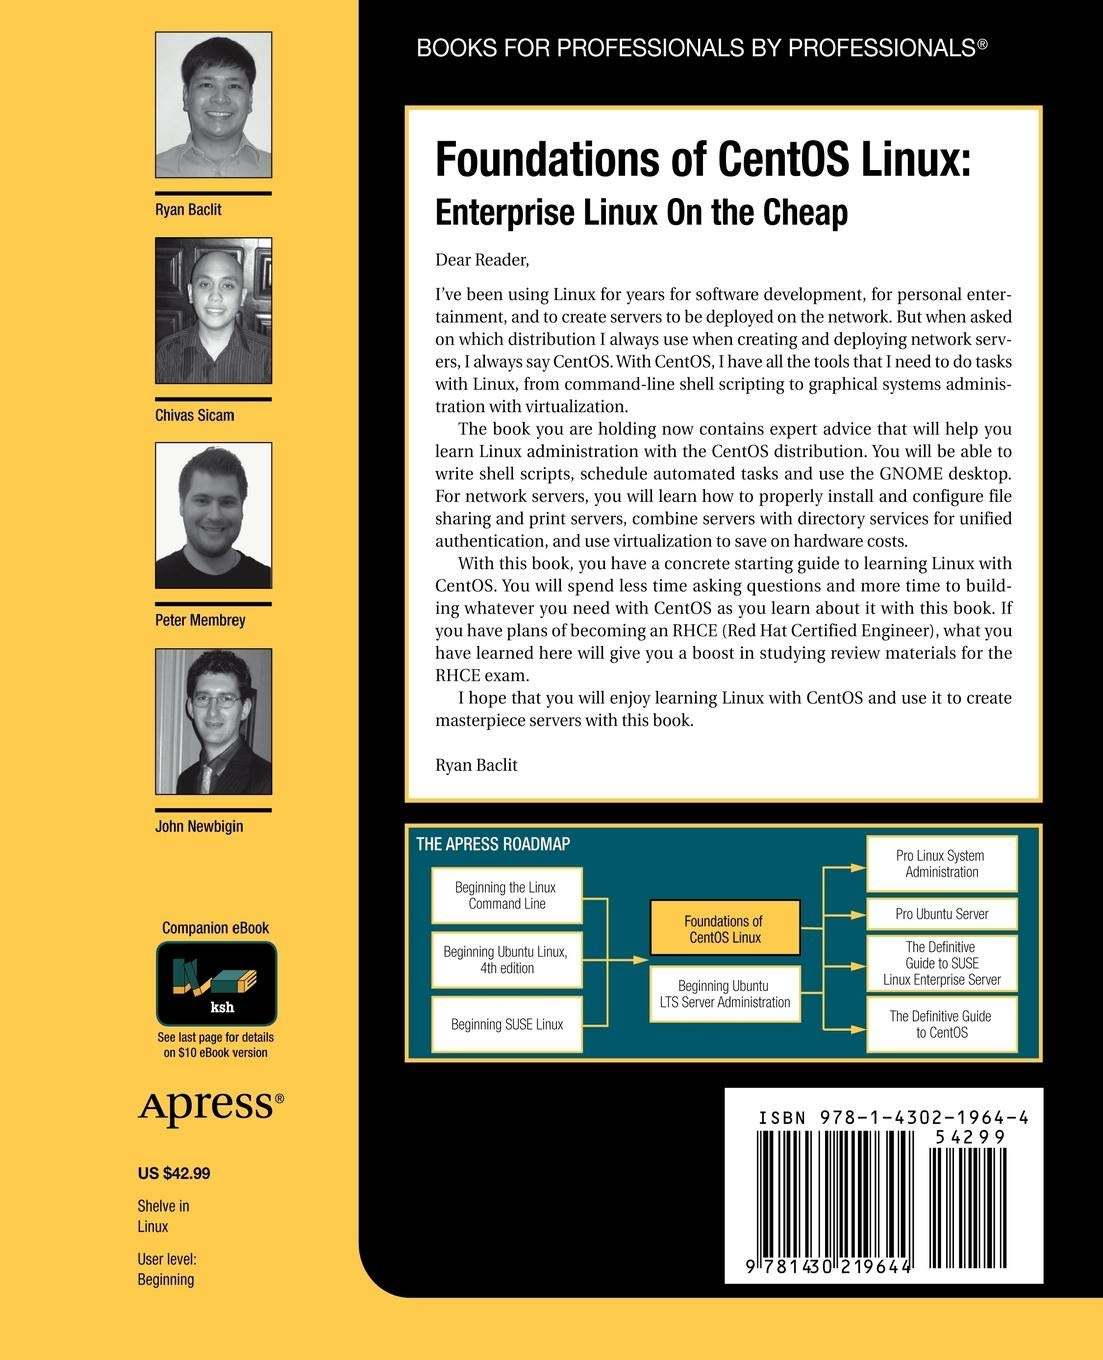 Foundations of CentOS Linux: Enterprise Linux On the Cheap: Amazon